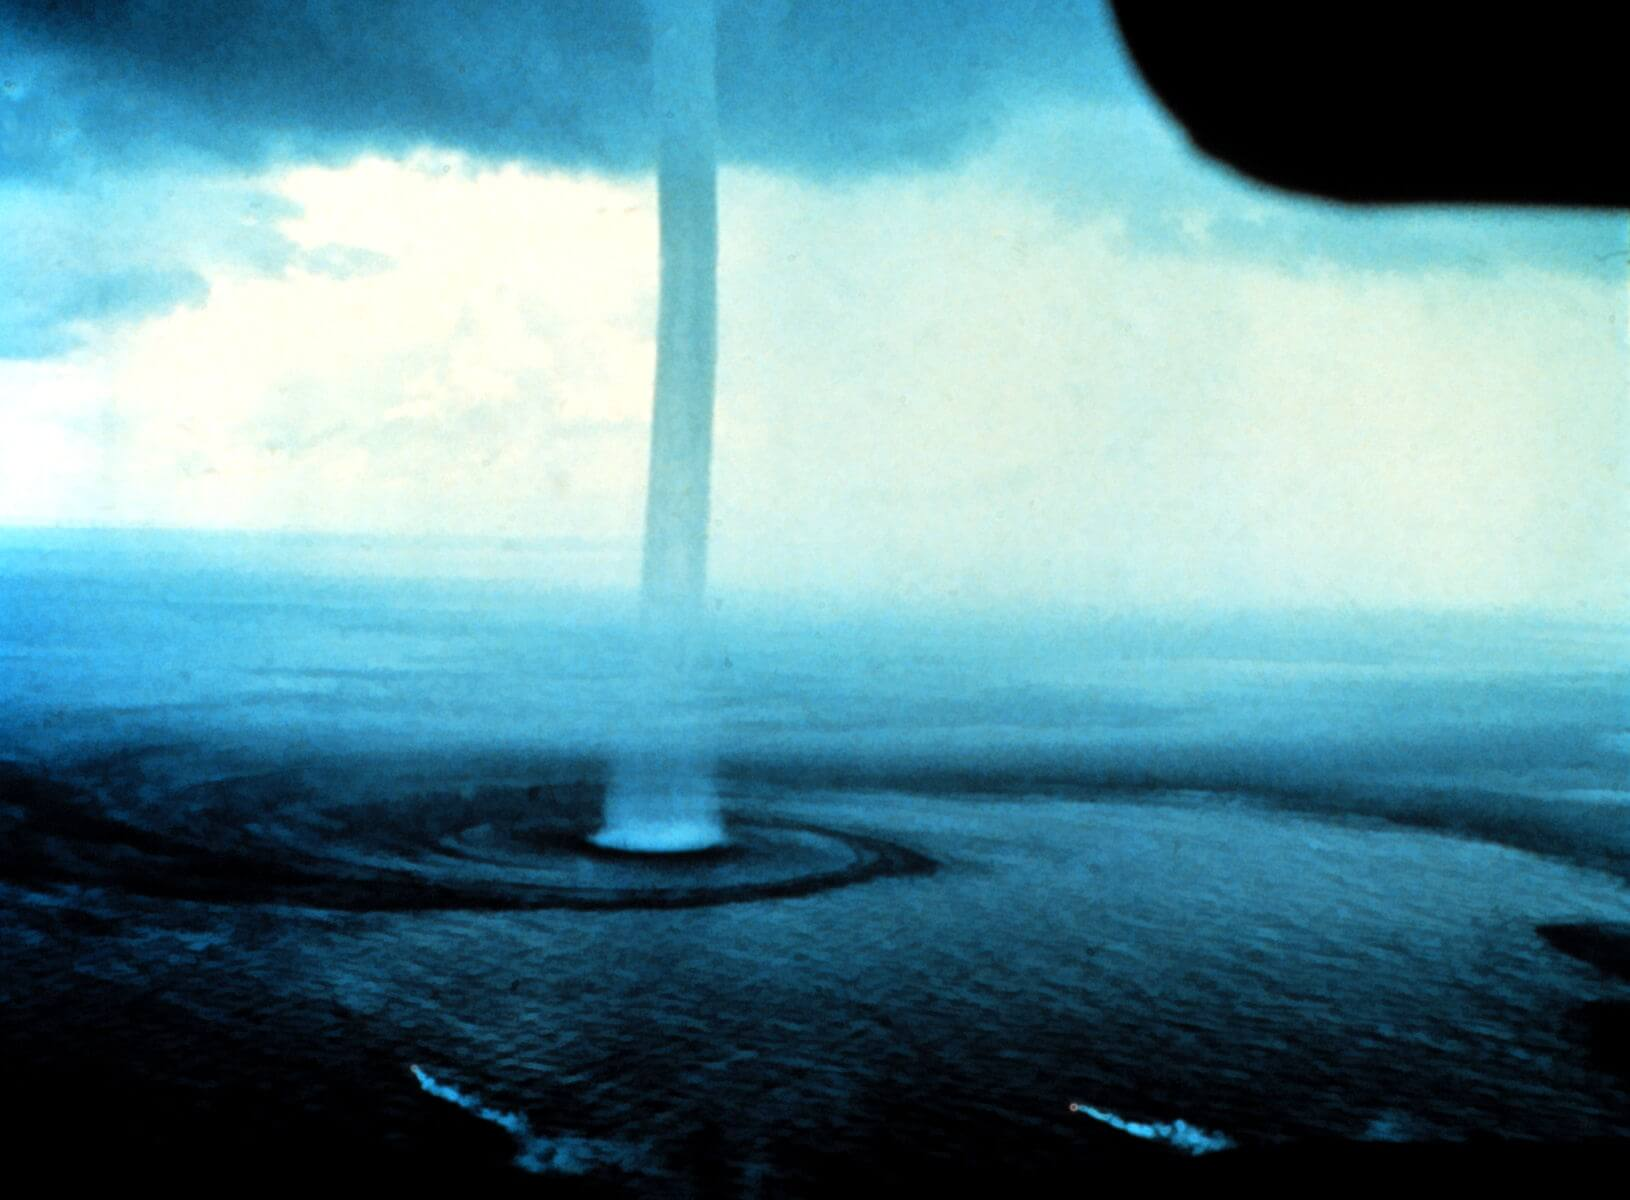 The circular motion of the wind in a tornadic waterspout. Image Source: Wikimedia Commons